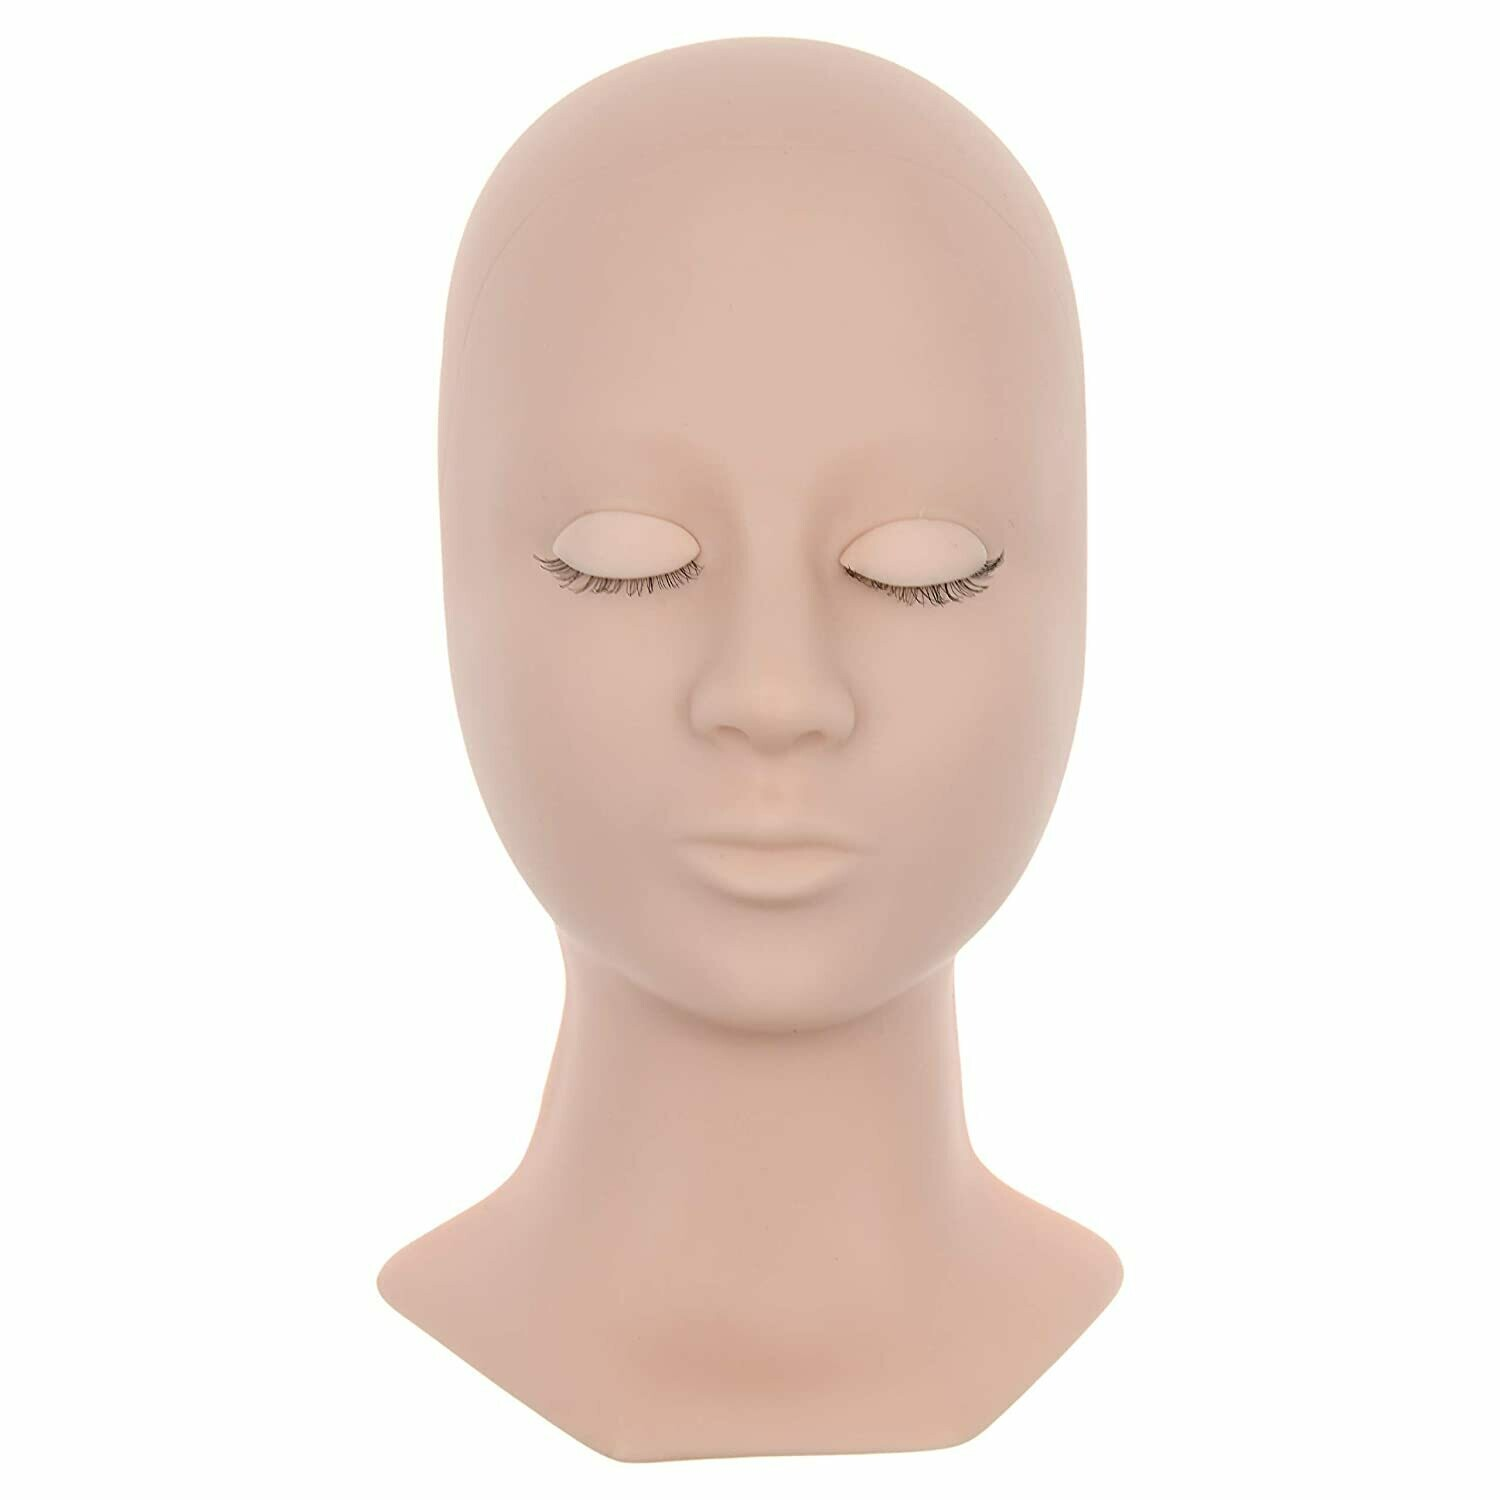 [BNP] mannequin head for eyelash extensions with 3 pair removable eye lids